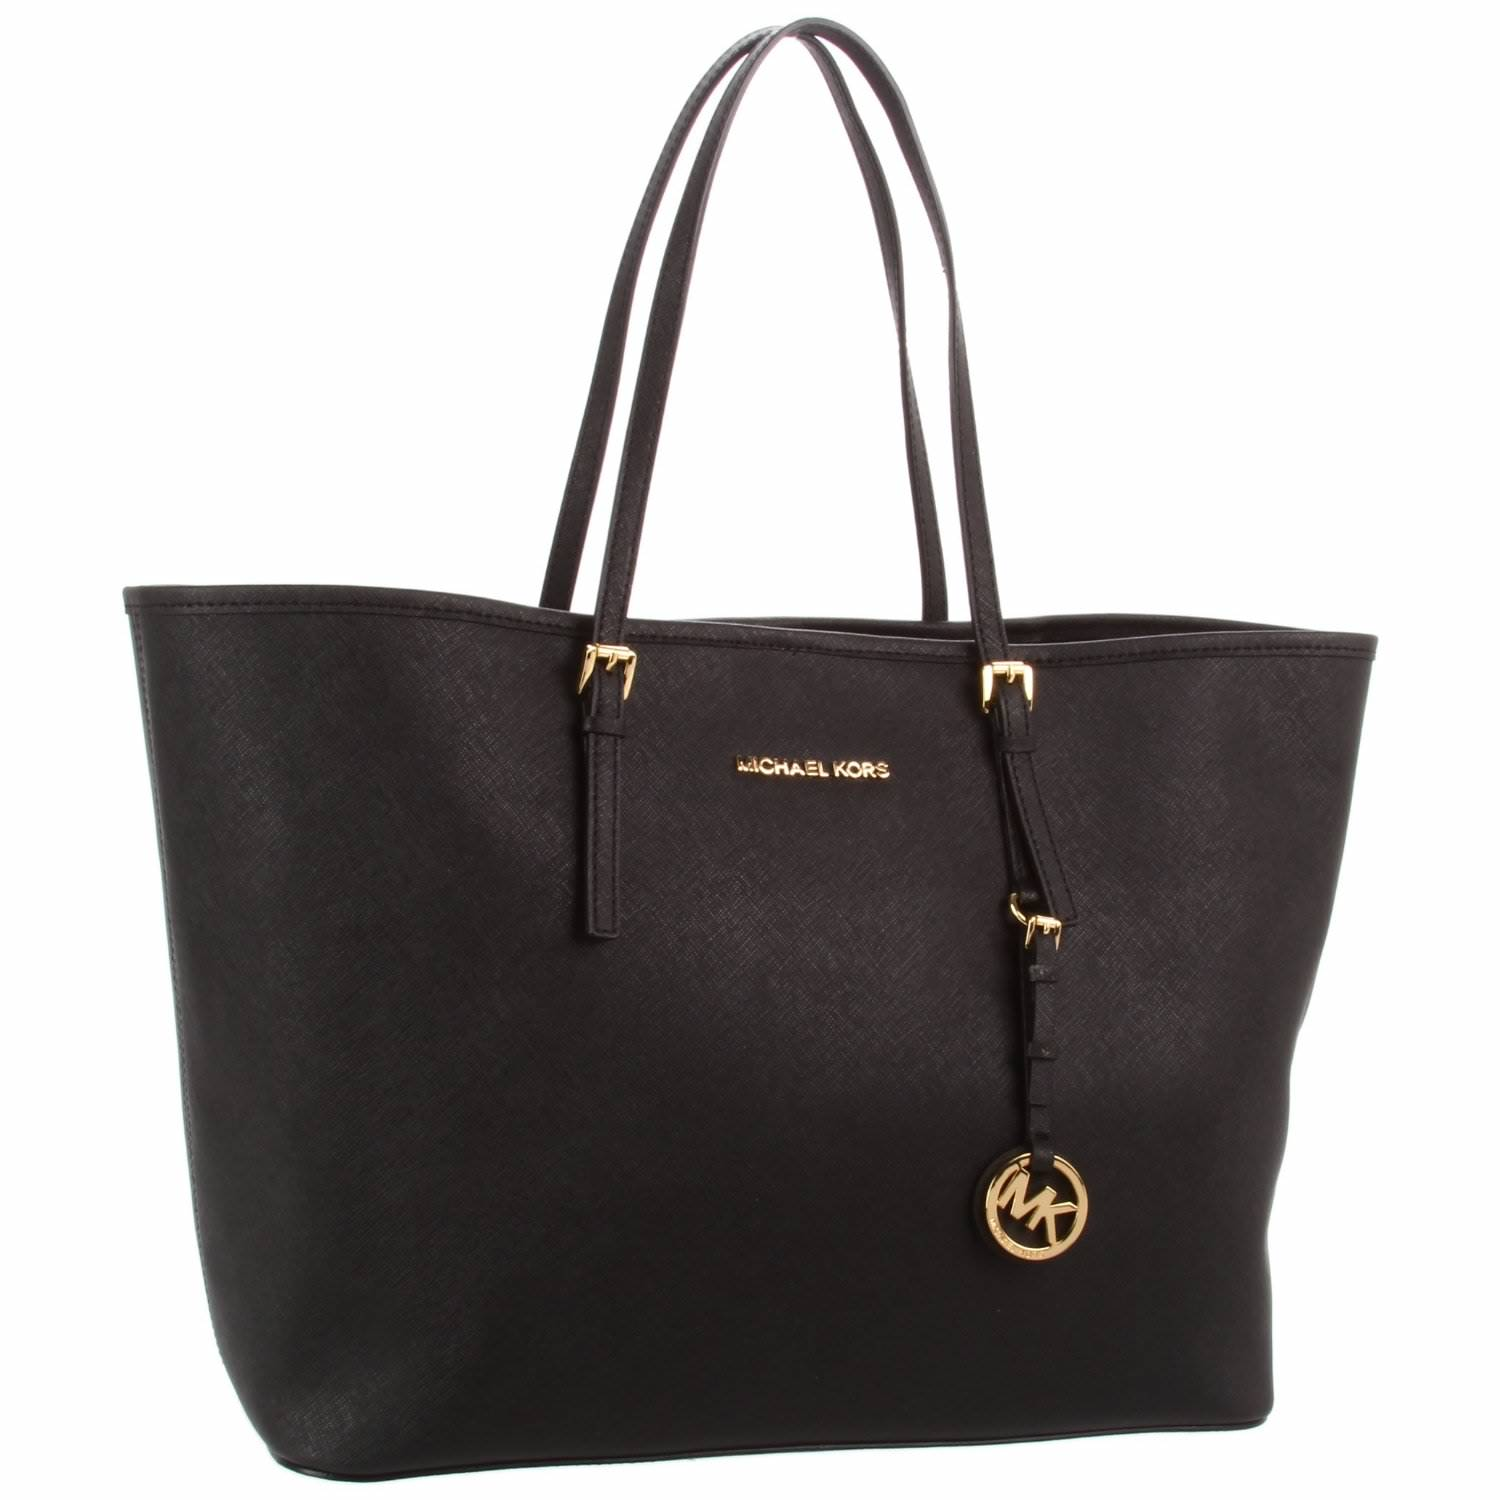 watch me accessorize myself sale michael kors jet set travel tote. Black Bedroom Furniture Sets. Home Design Ideas